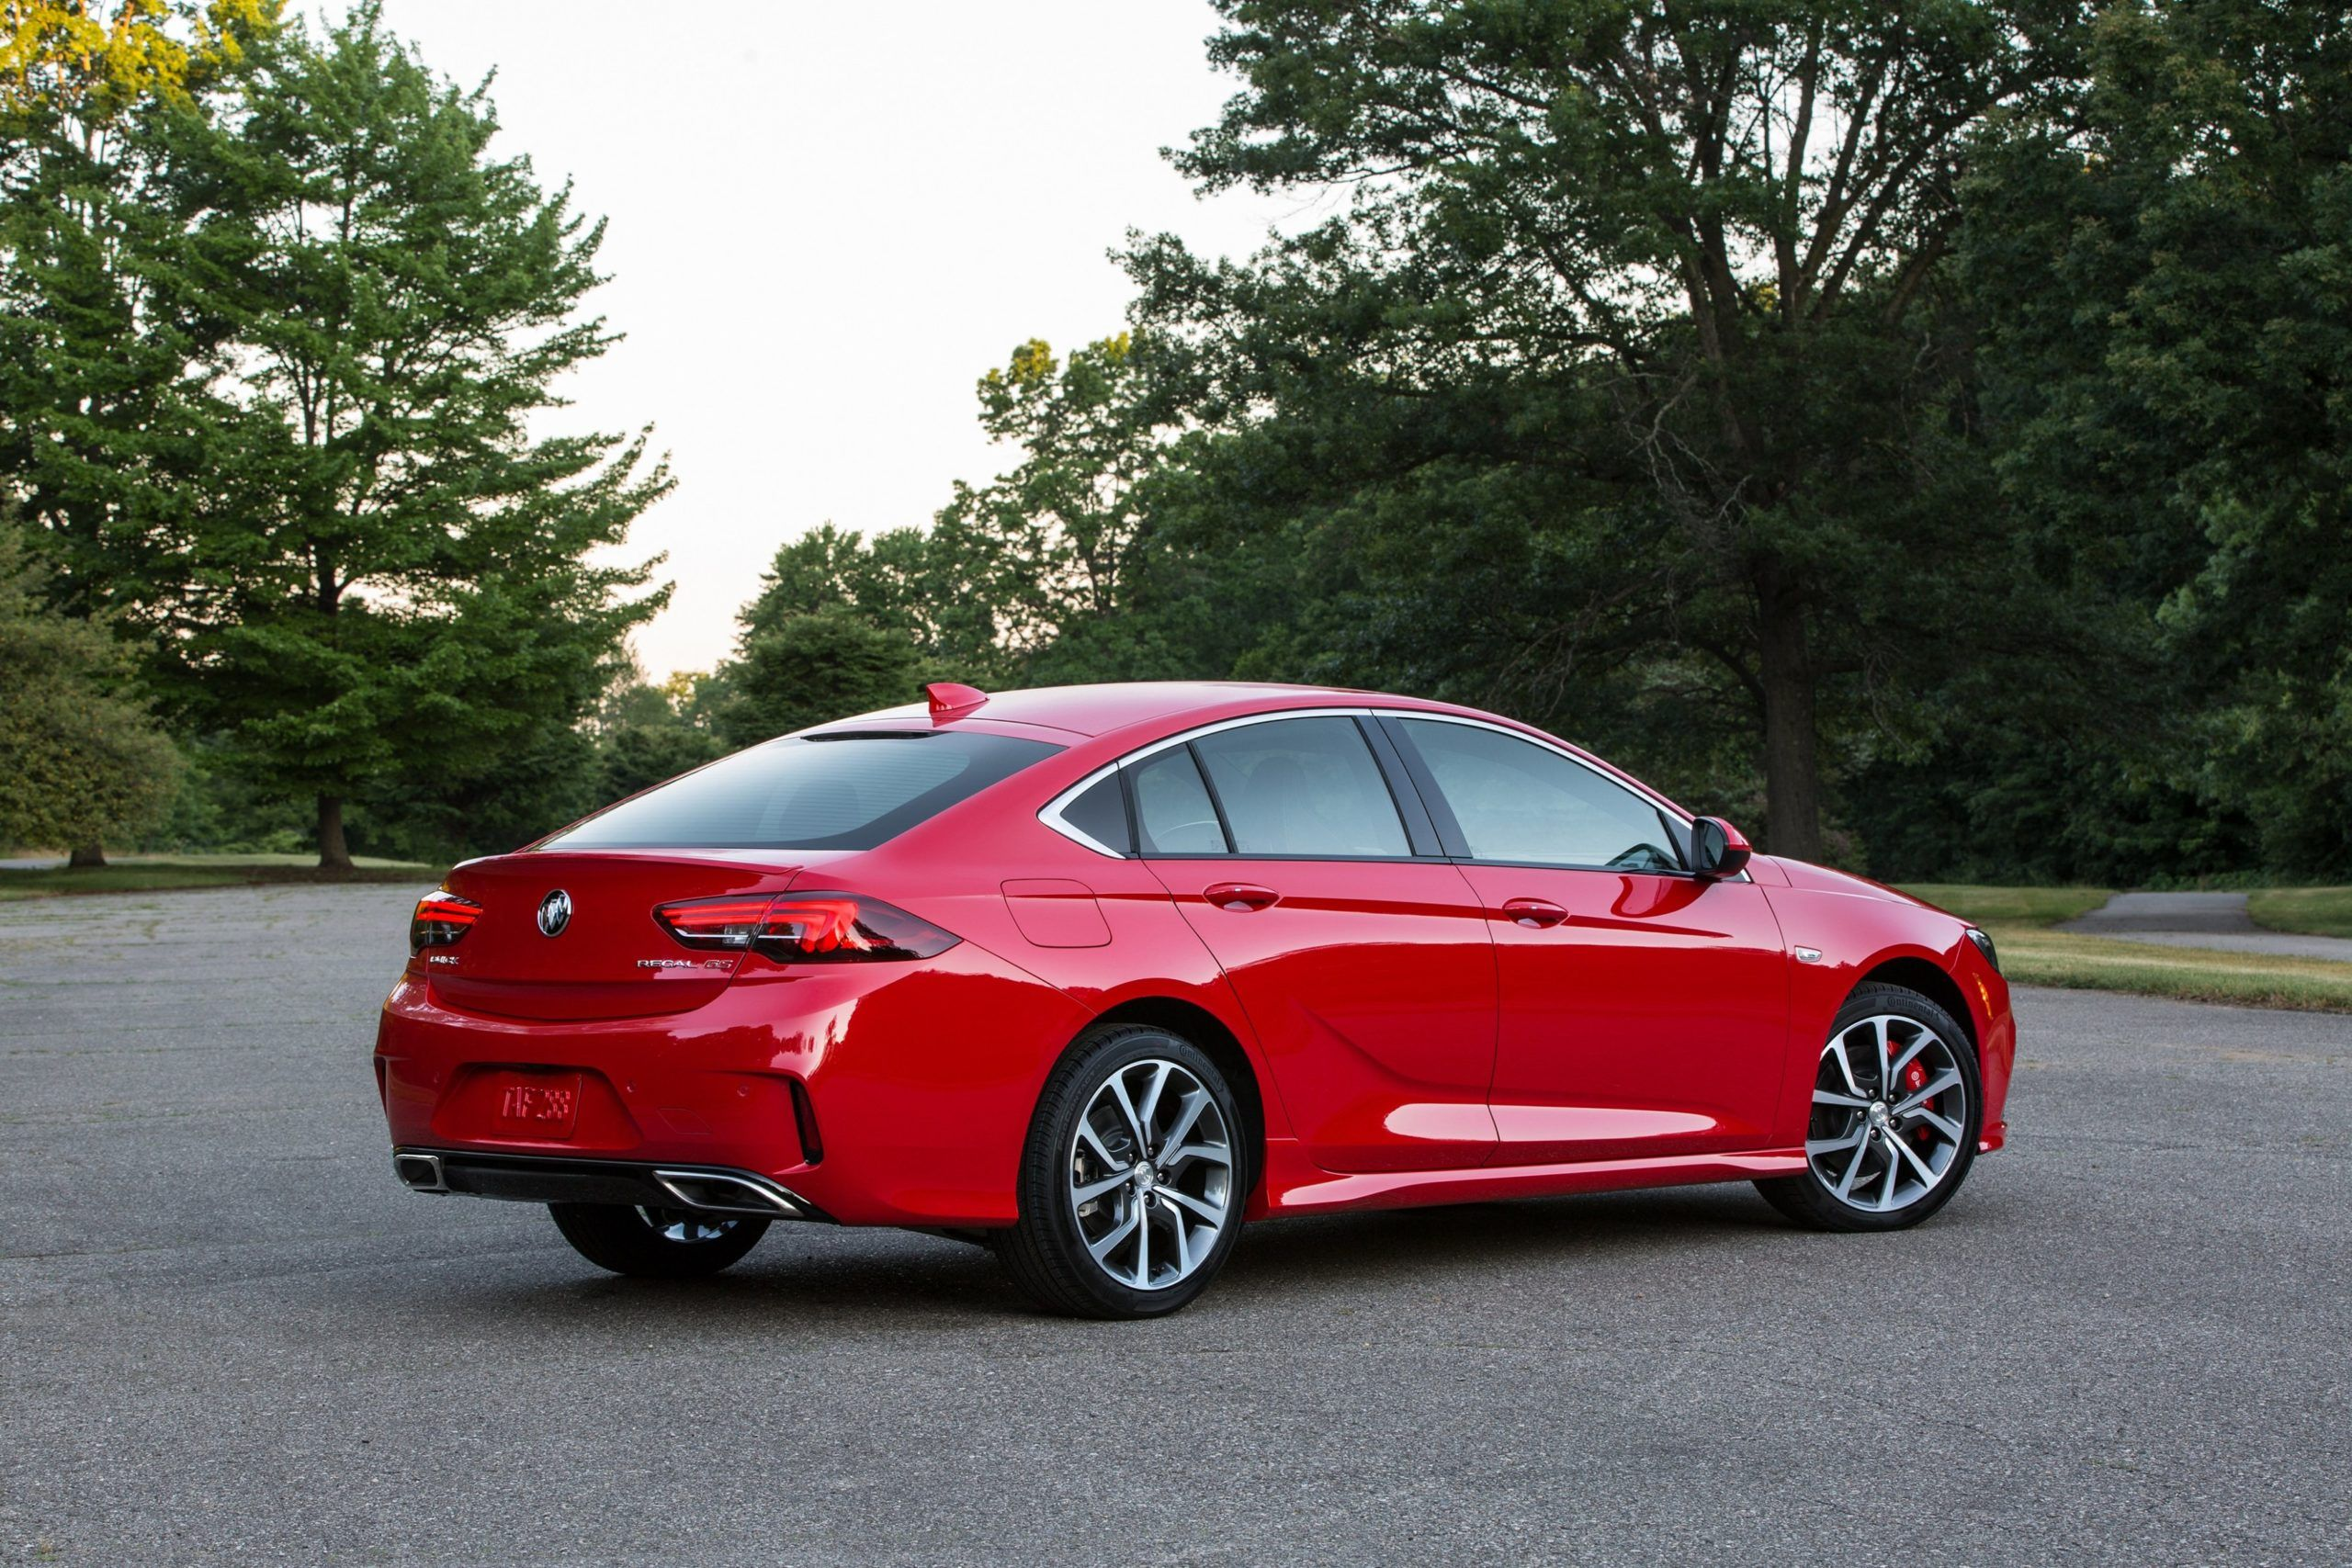 2021 Buick Regal Gs Coupe Price and Review